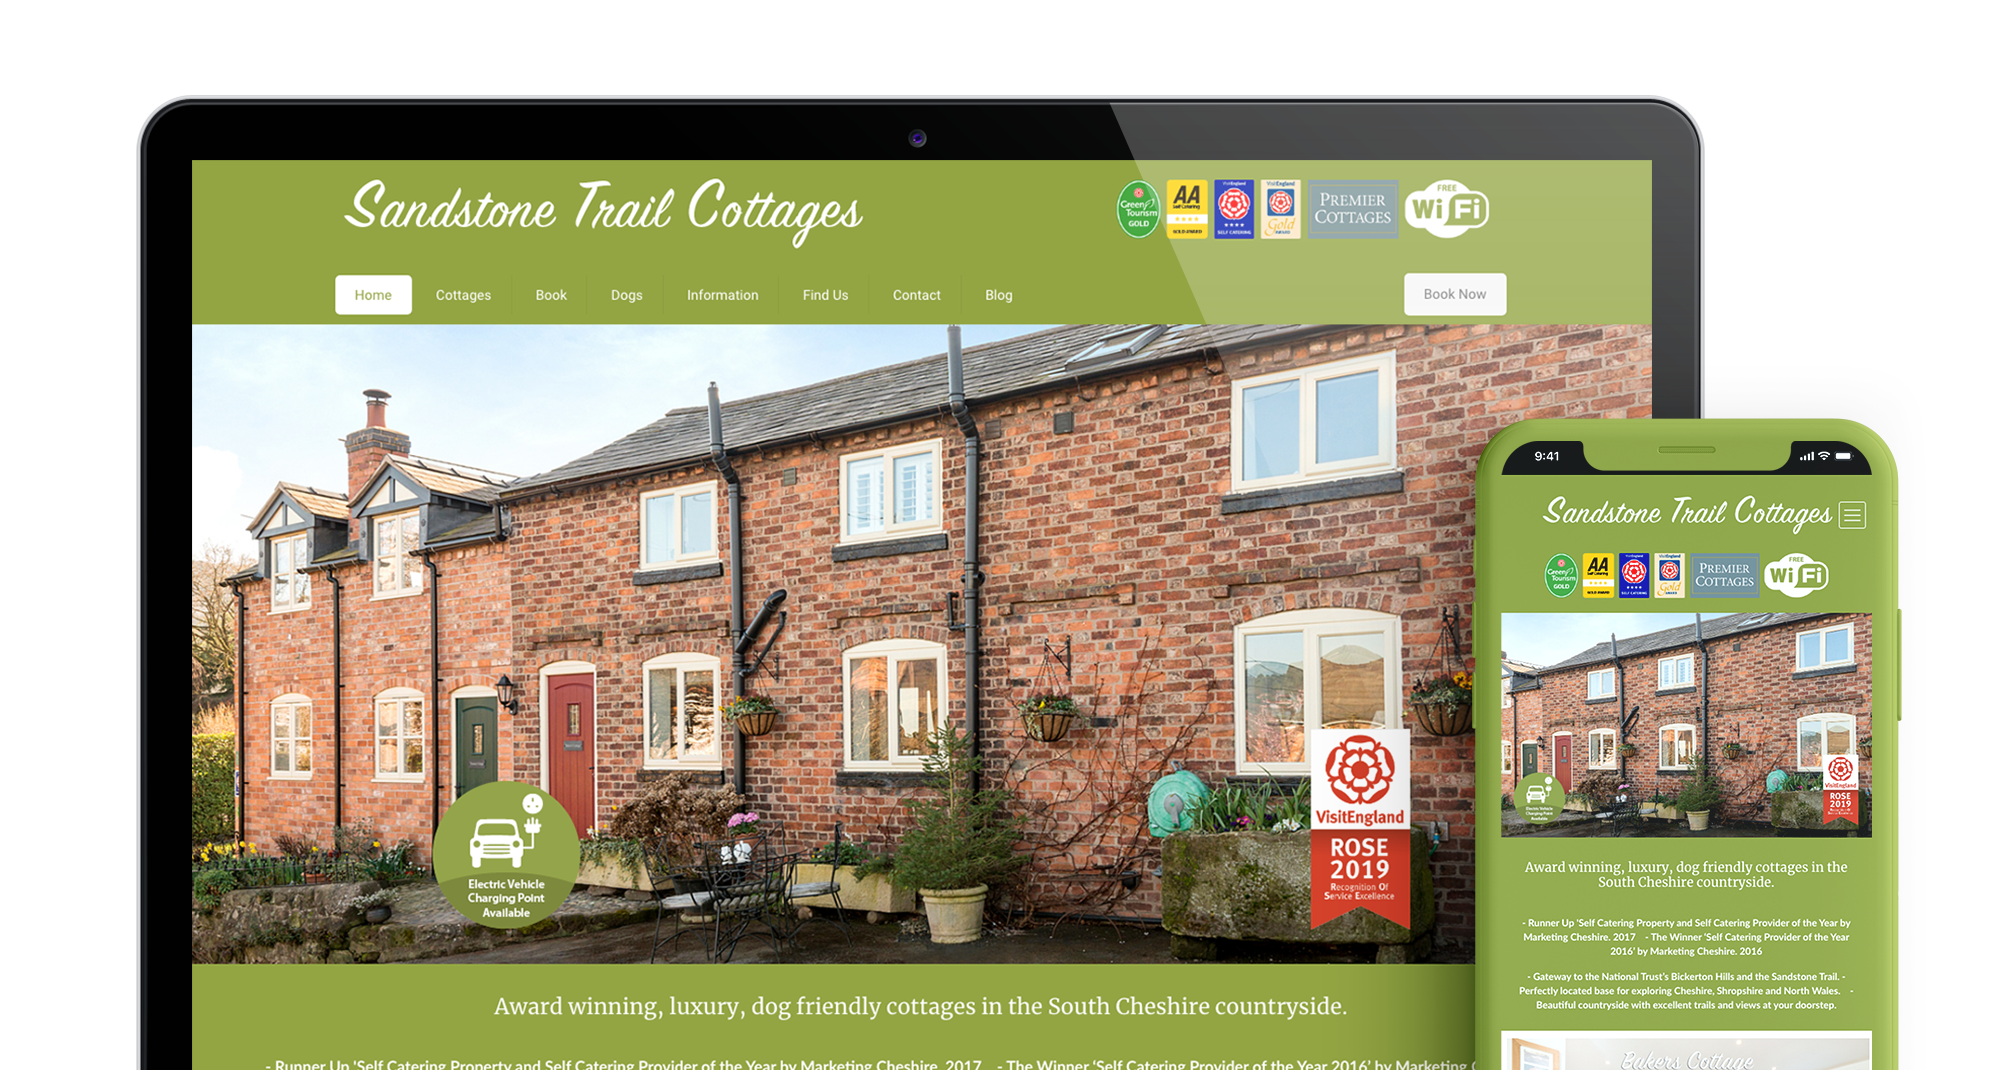 <span class='wpmi-mlabel'>Sandstone Trail Cottages Header Main Image</span>